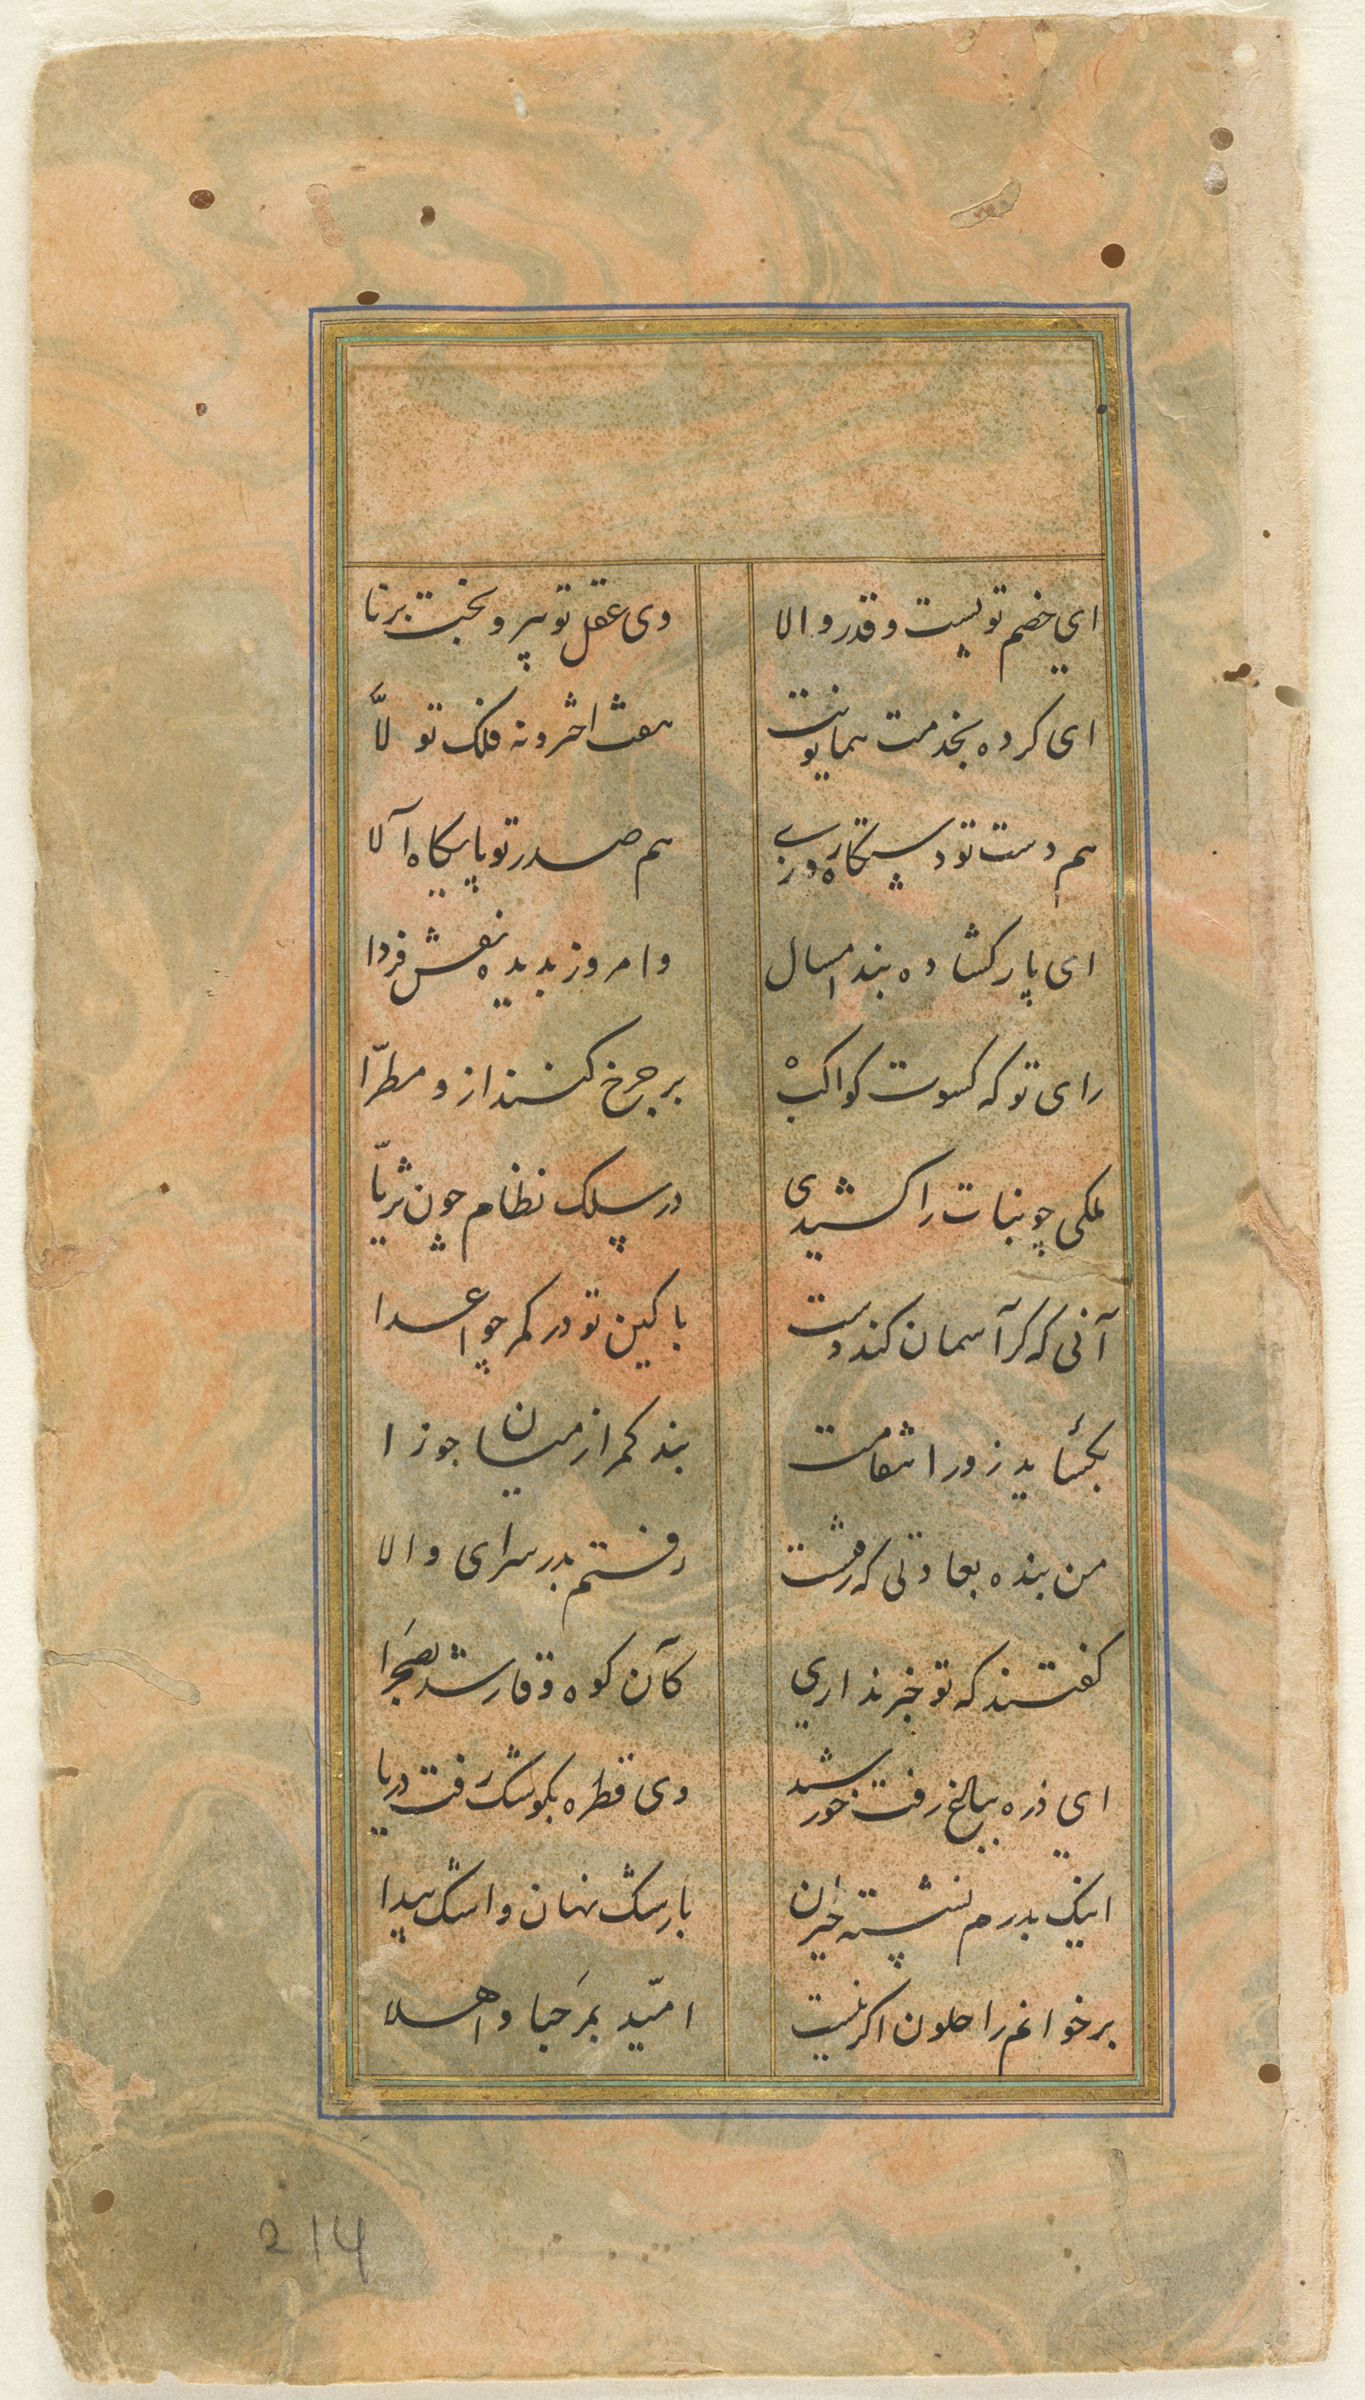 Folio 214 (Text, Recto And Verso), From A Manuscript Of The Divan Of Anvari